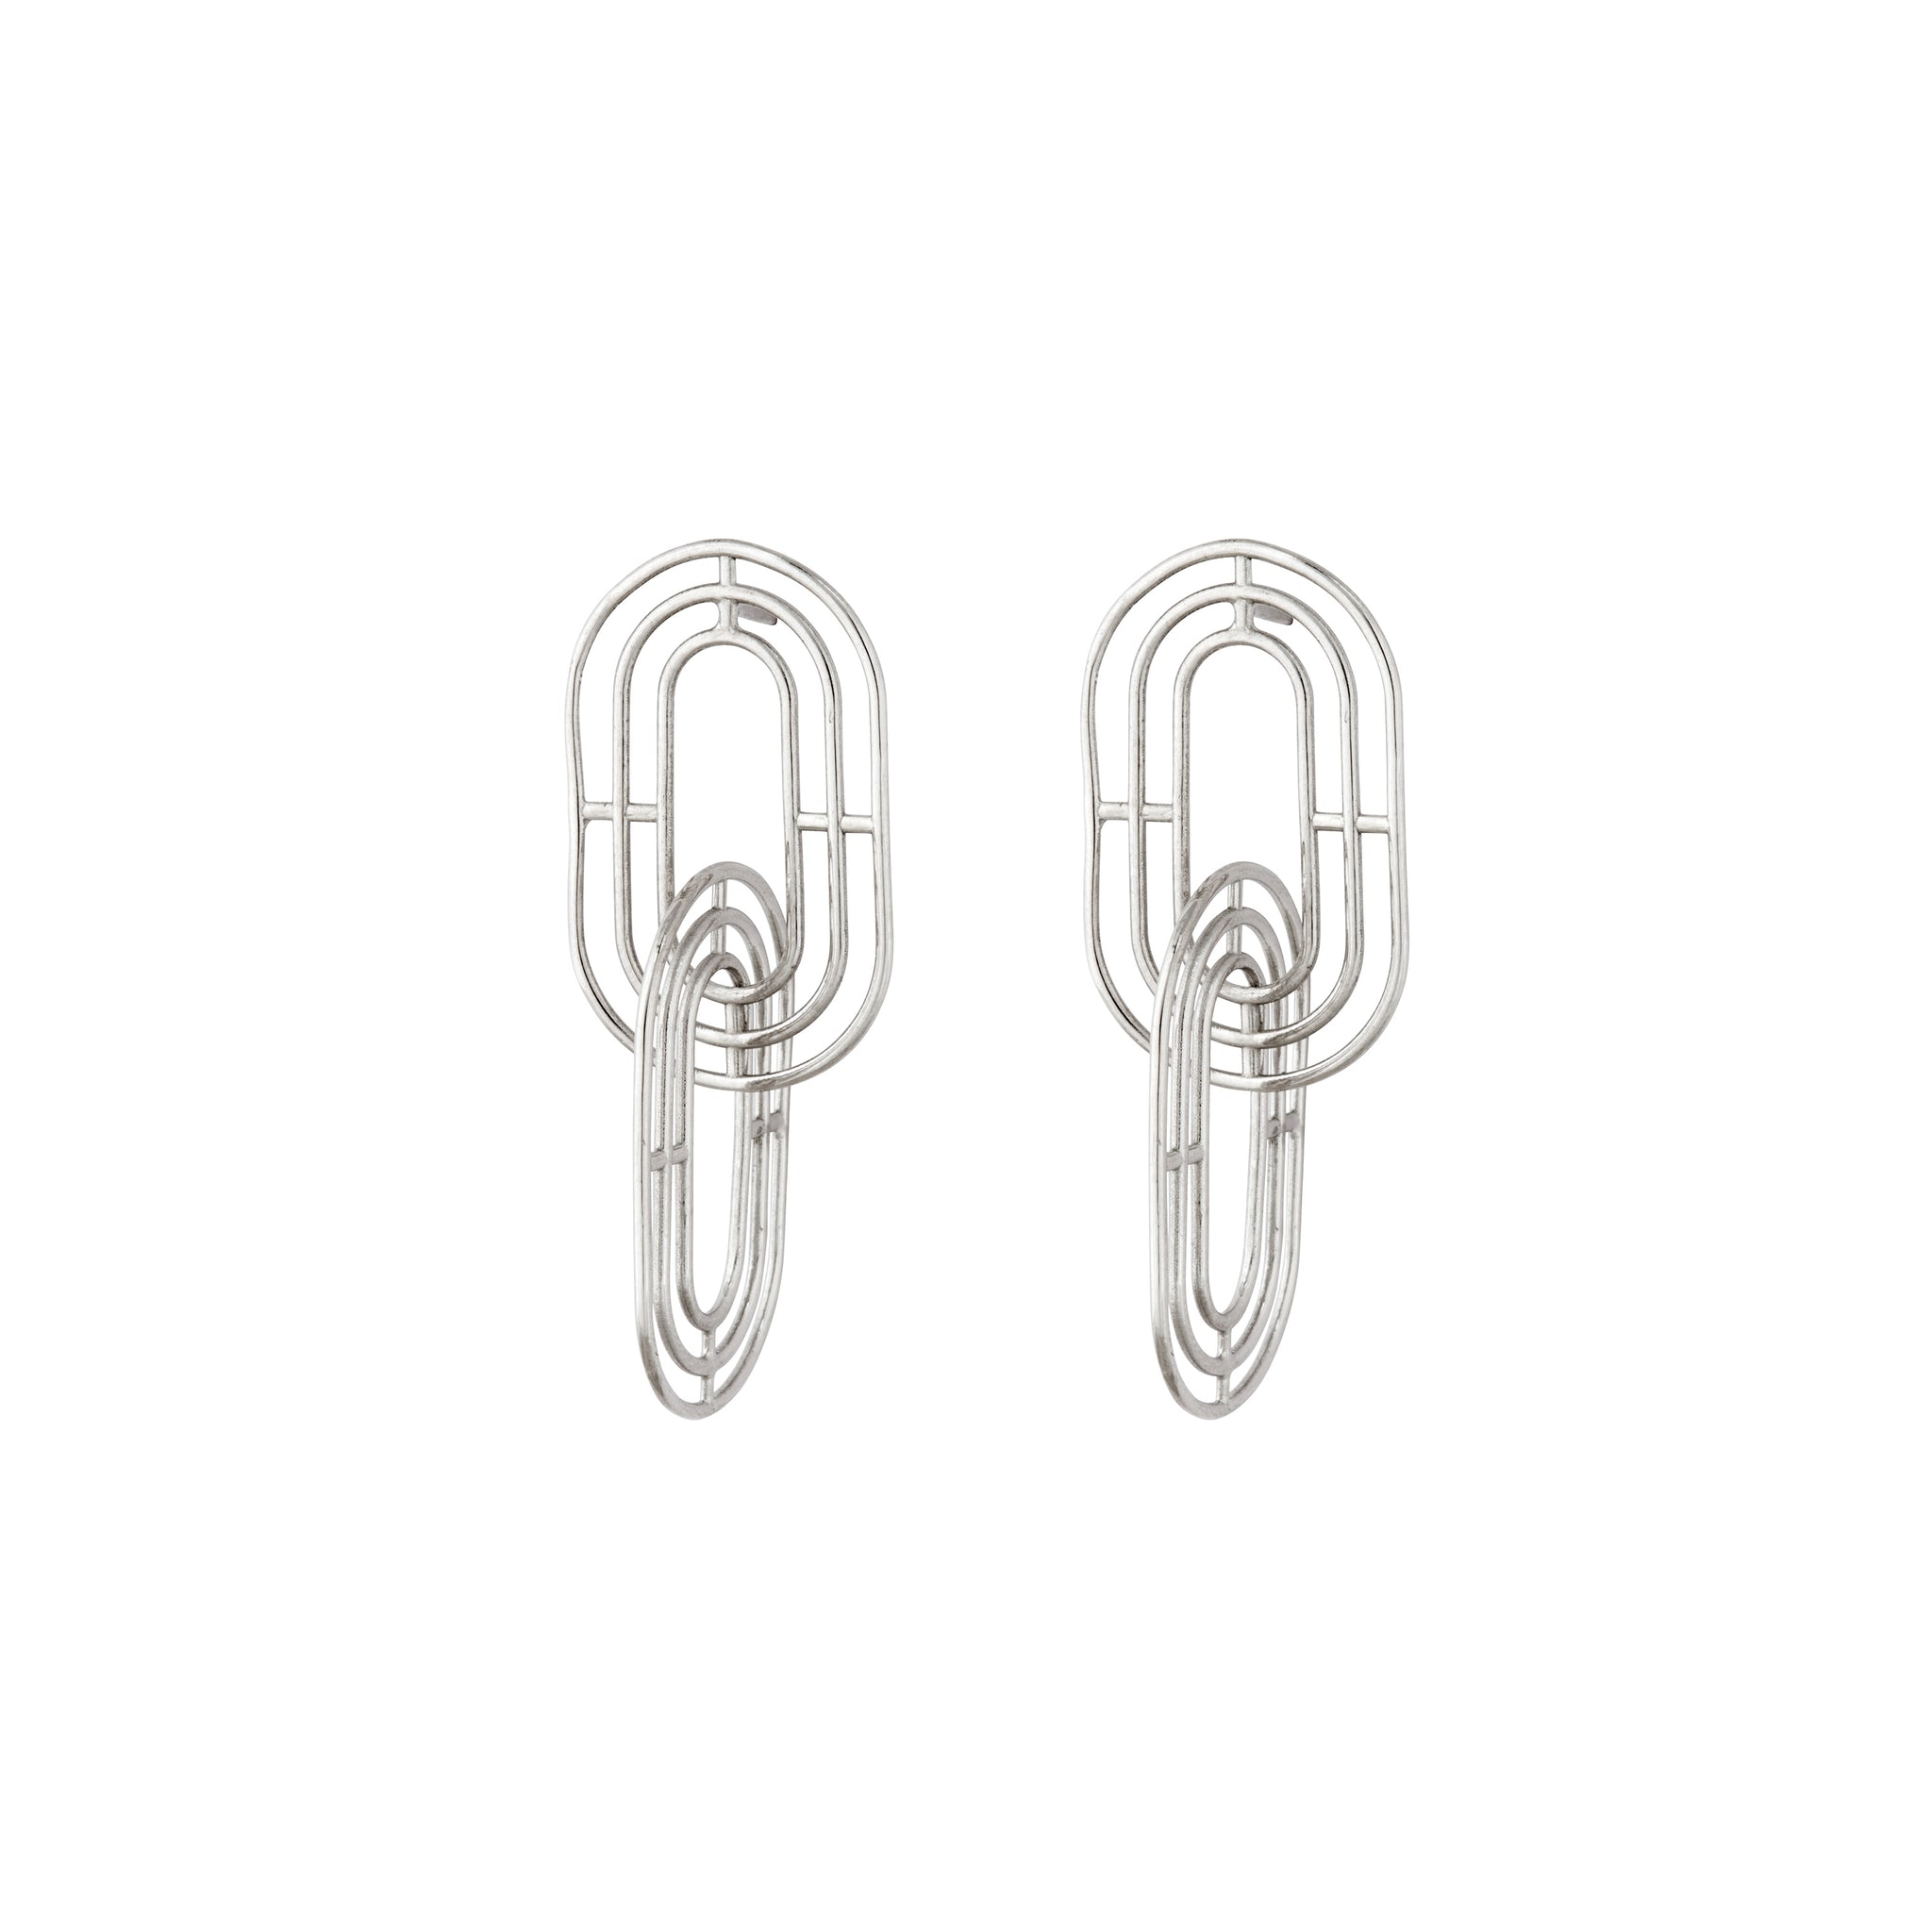 CHARLOTTE VALKENIERS - MINIM EARRINGS